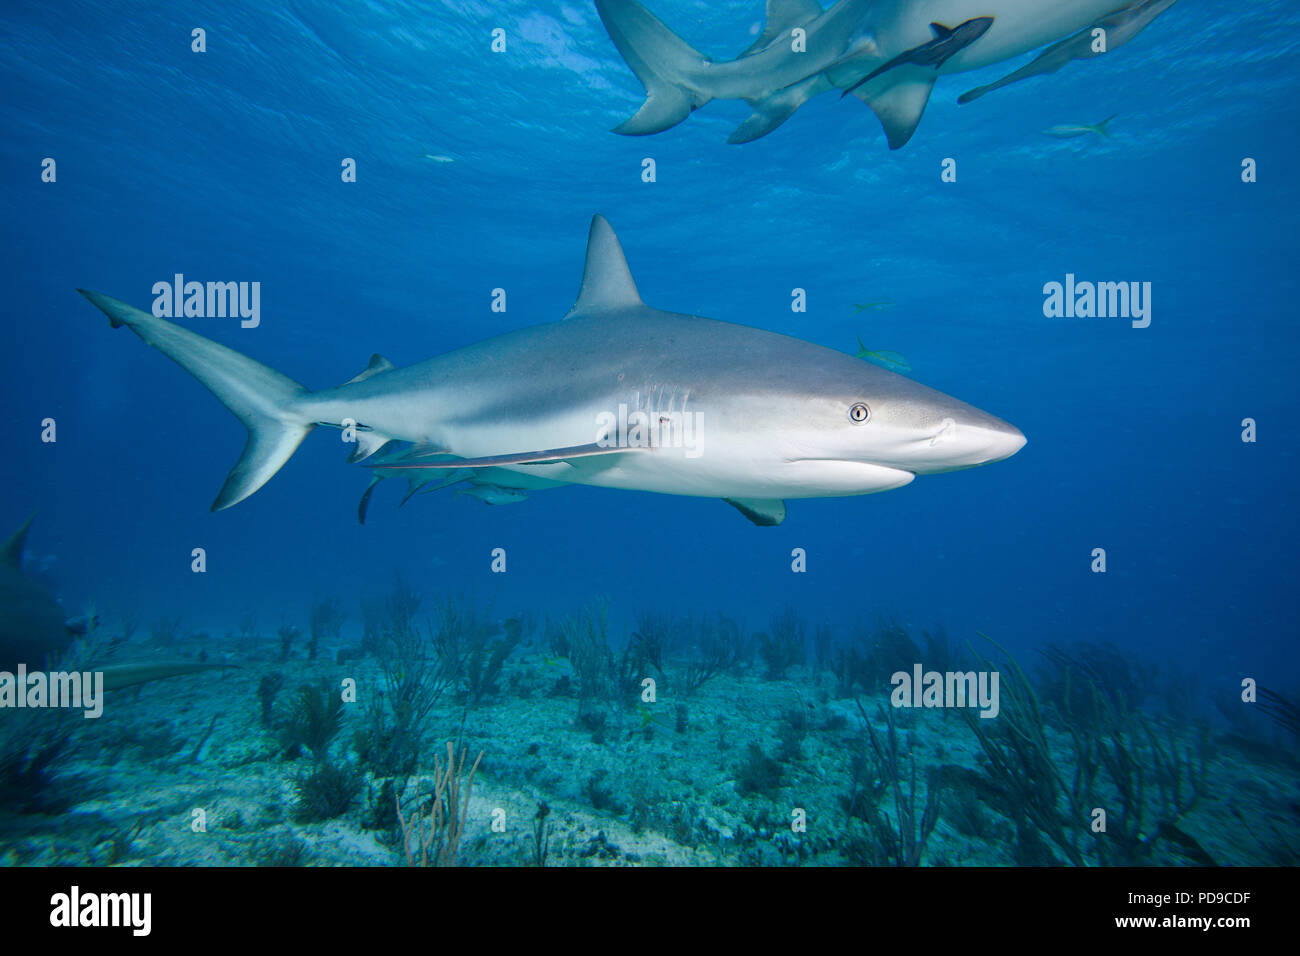 This Caribbean Reef Shark, Carcharhinus perezi, was attracted to Mr. Fleetham's camera with the use of bait.  Sharks are generally shy, cautious creat - Stock Image